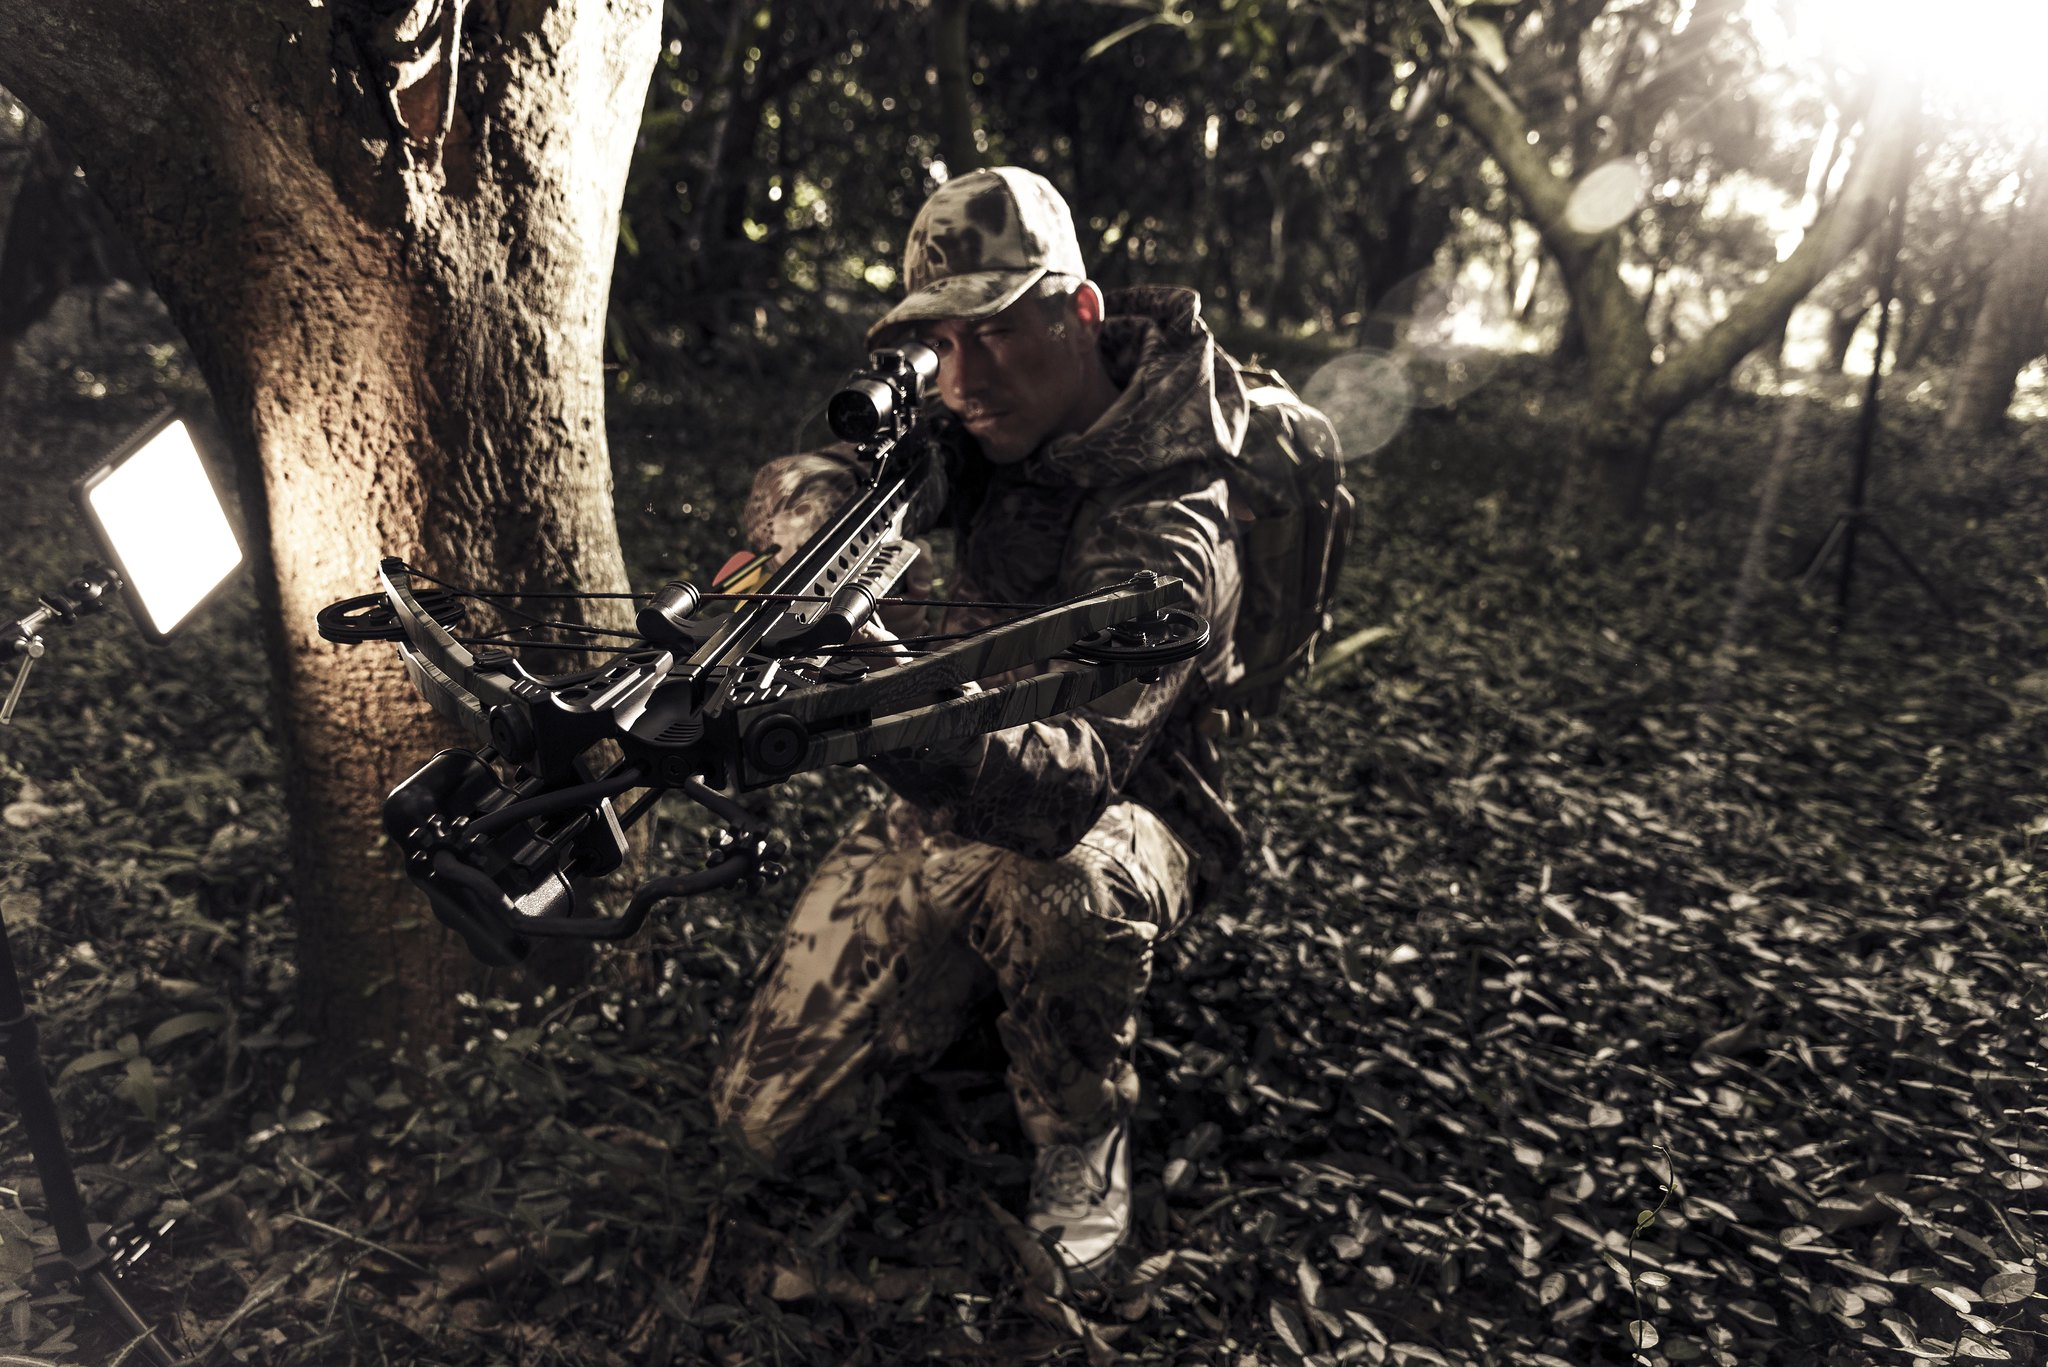 Man in Camo with Crossbow